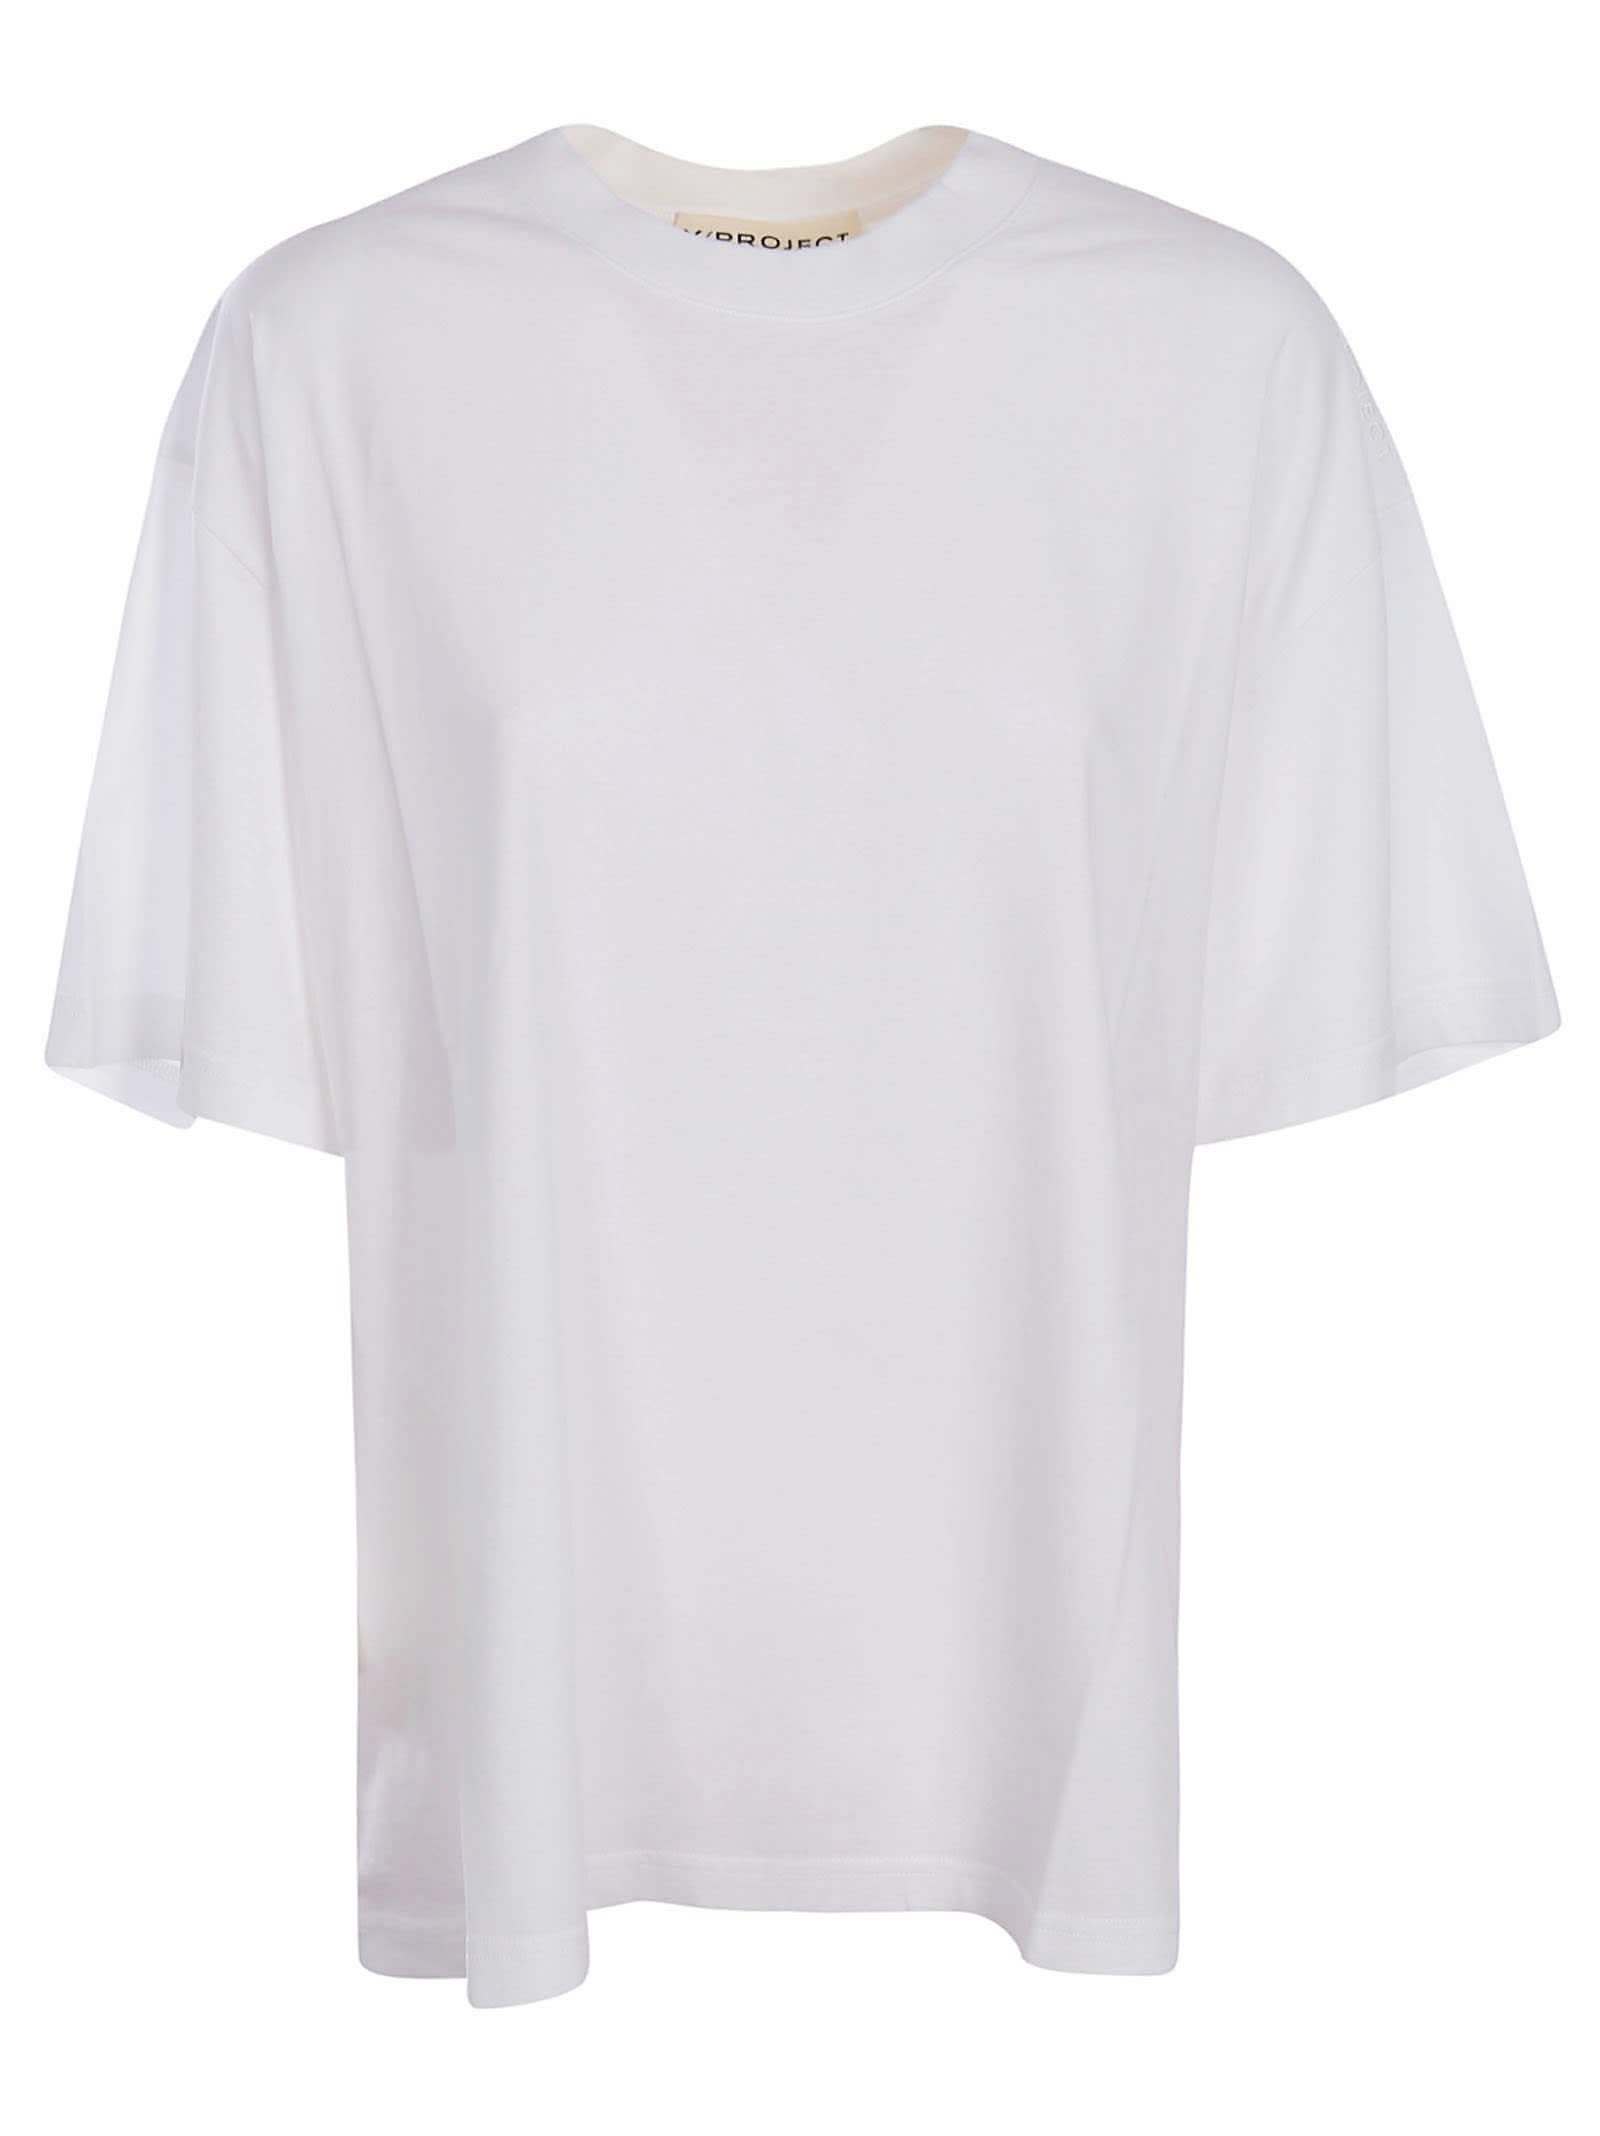 Y/project CLASSIC Y BACK T-SHIRT